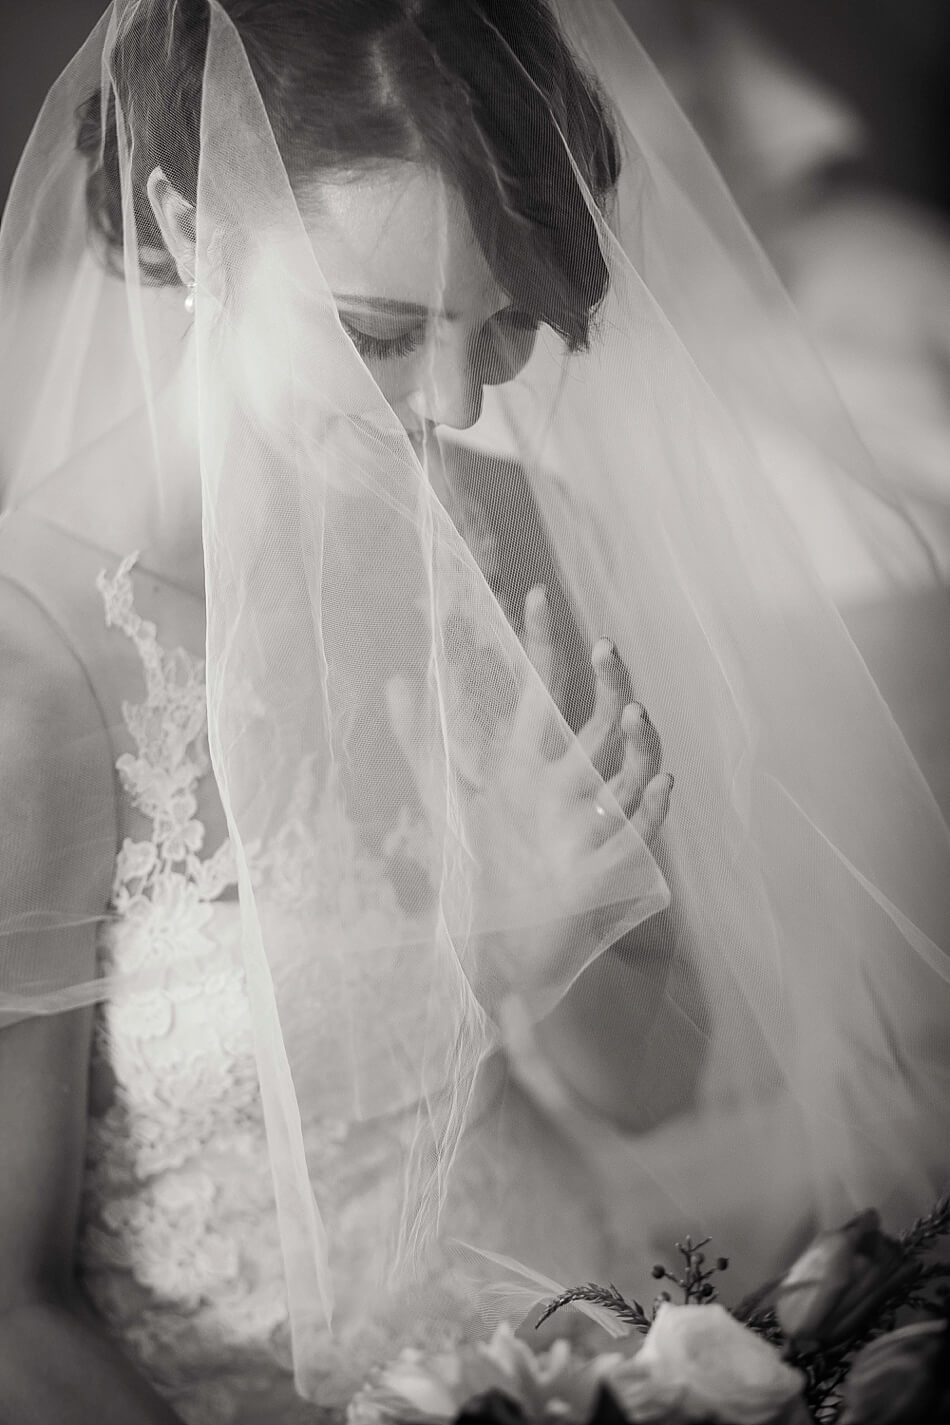 nikki-meyer_landtscap_stellenbosch_wedding_photographer_023